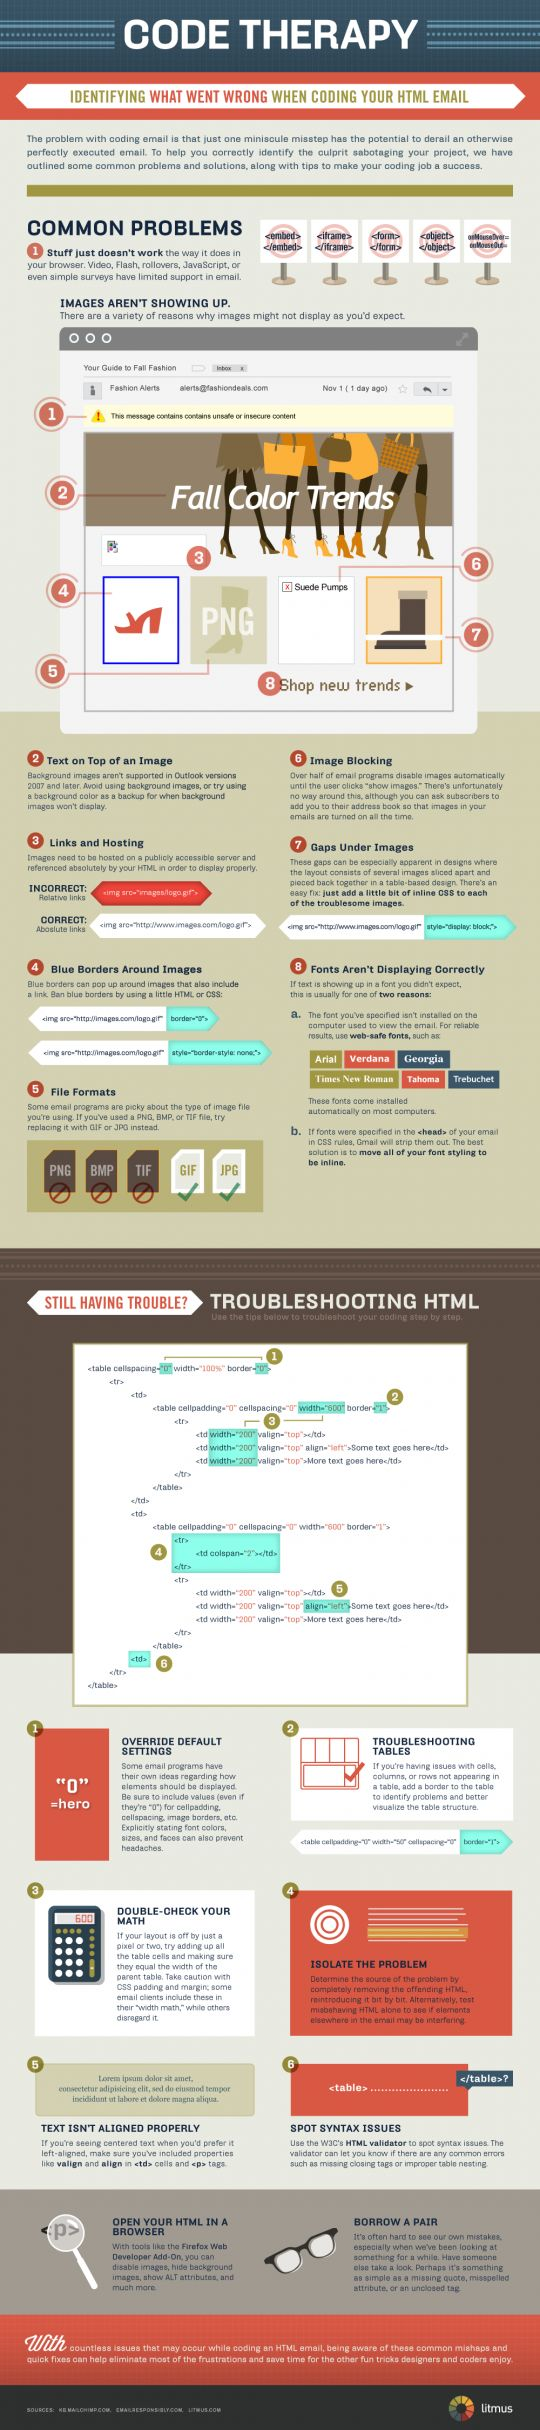 CODE THERAPY    Identifying What Went Wrong When Coding Your HTML Email    The problem with coding email is that just one miniscule misstep has the potential to derail an otherwise perfectly executed email. To help you correctly identify the culprit sabotaging your project, we have outlined some common problems and solutions, along with tips to make your coding job a success.